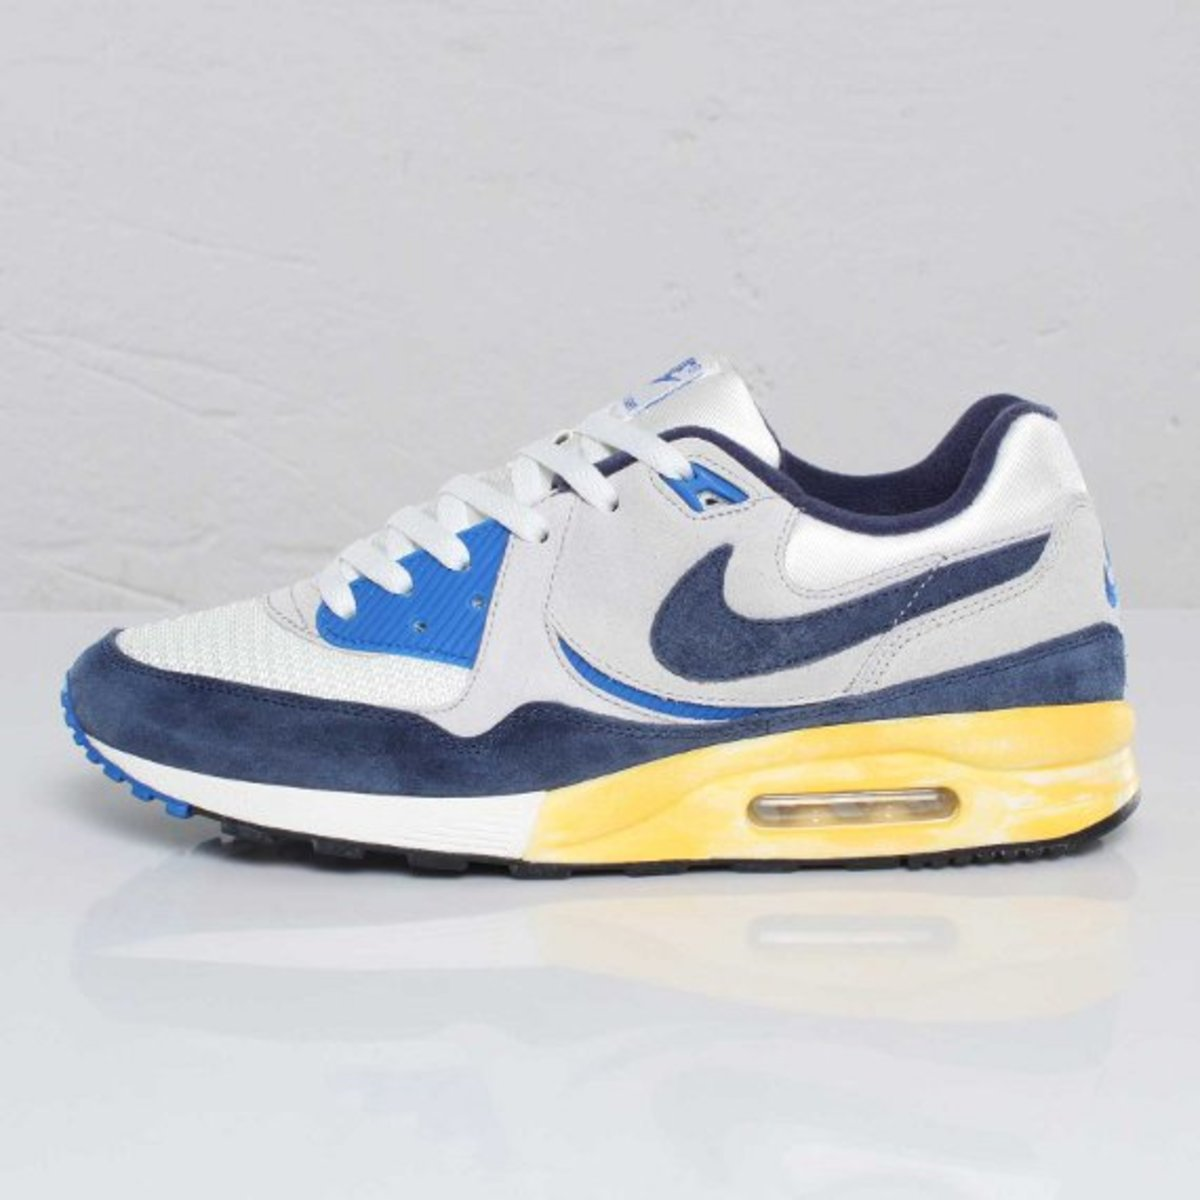 Nike Air Max Light VNTG QS Freshness Mag